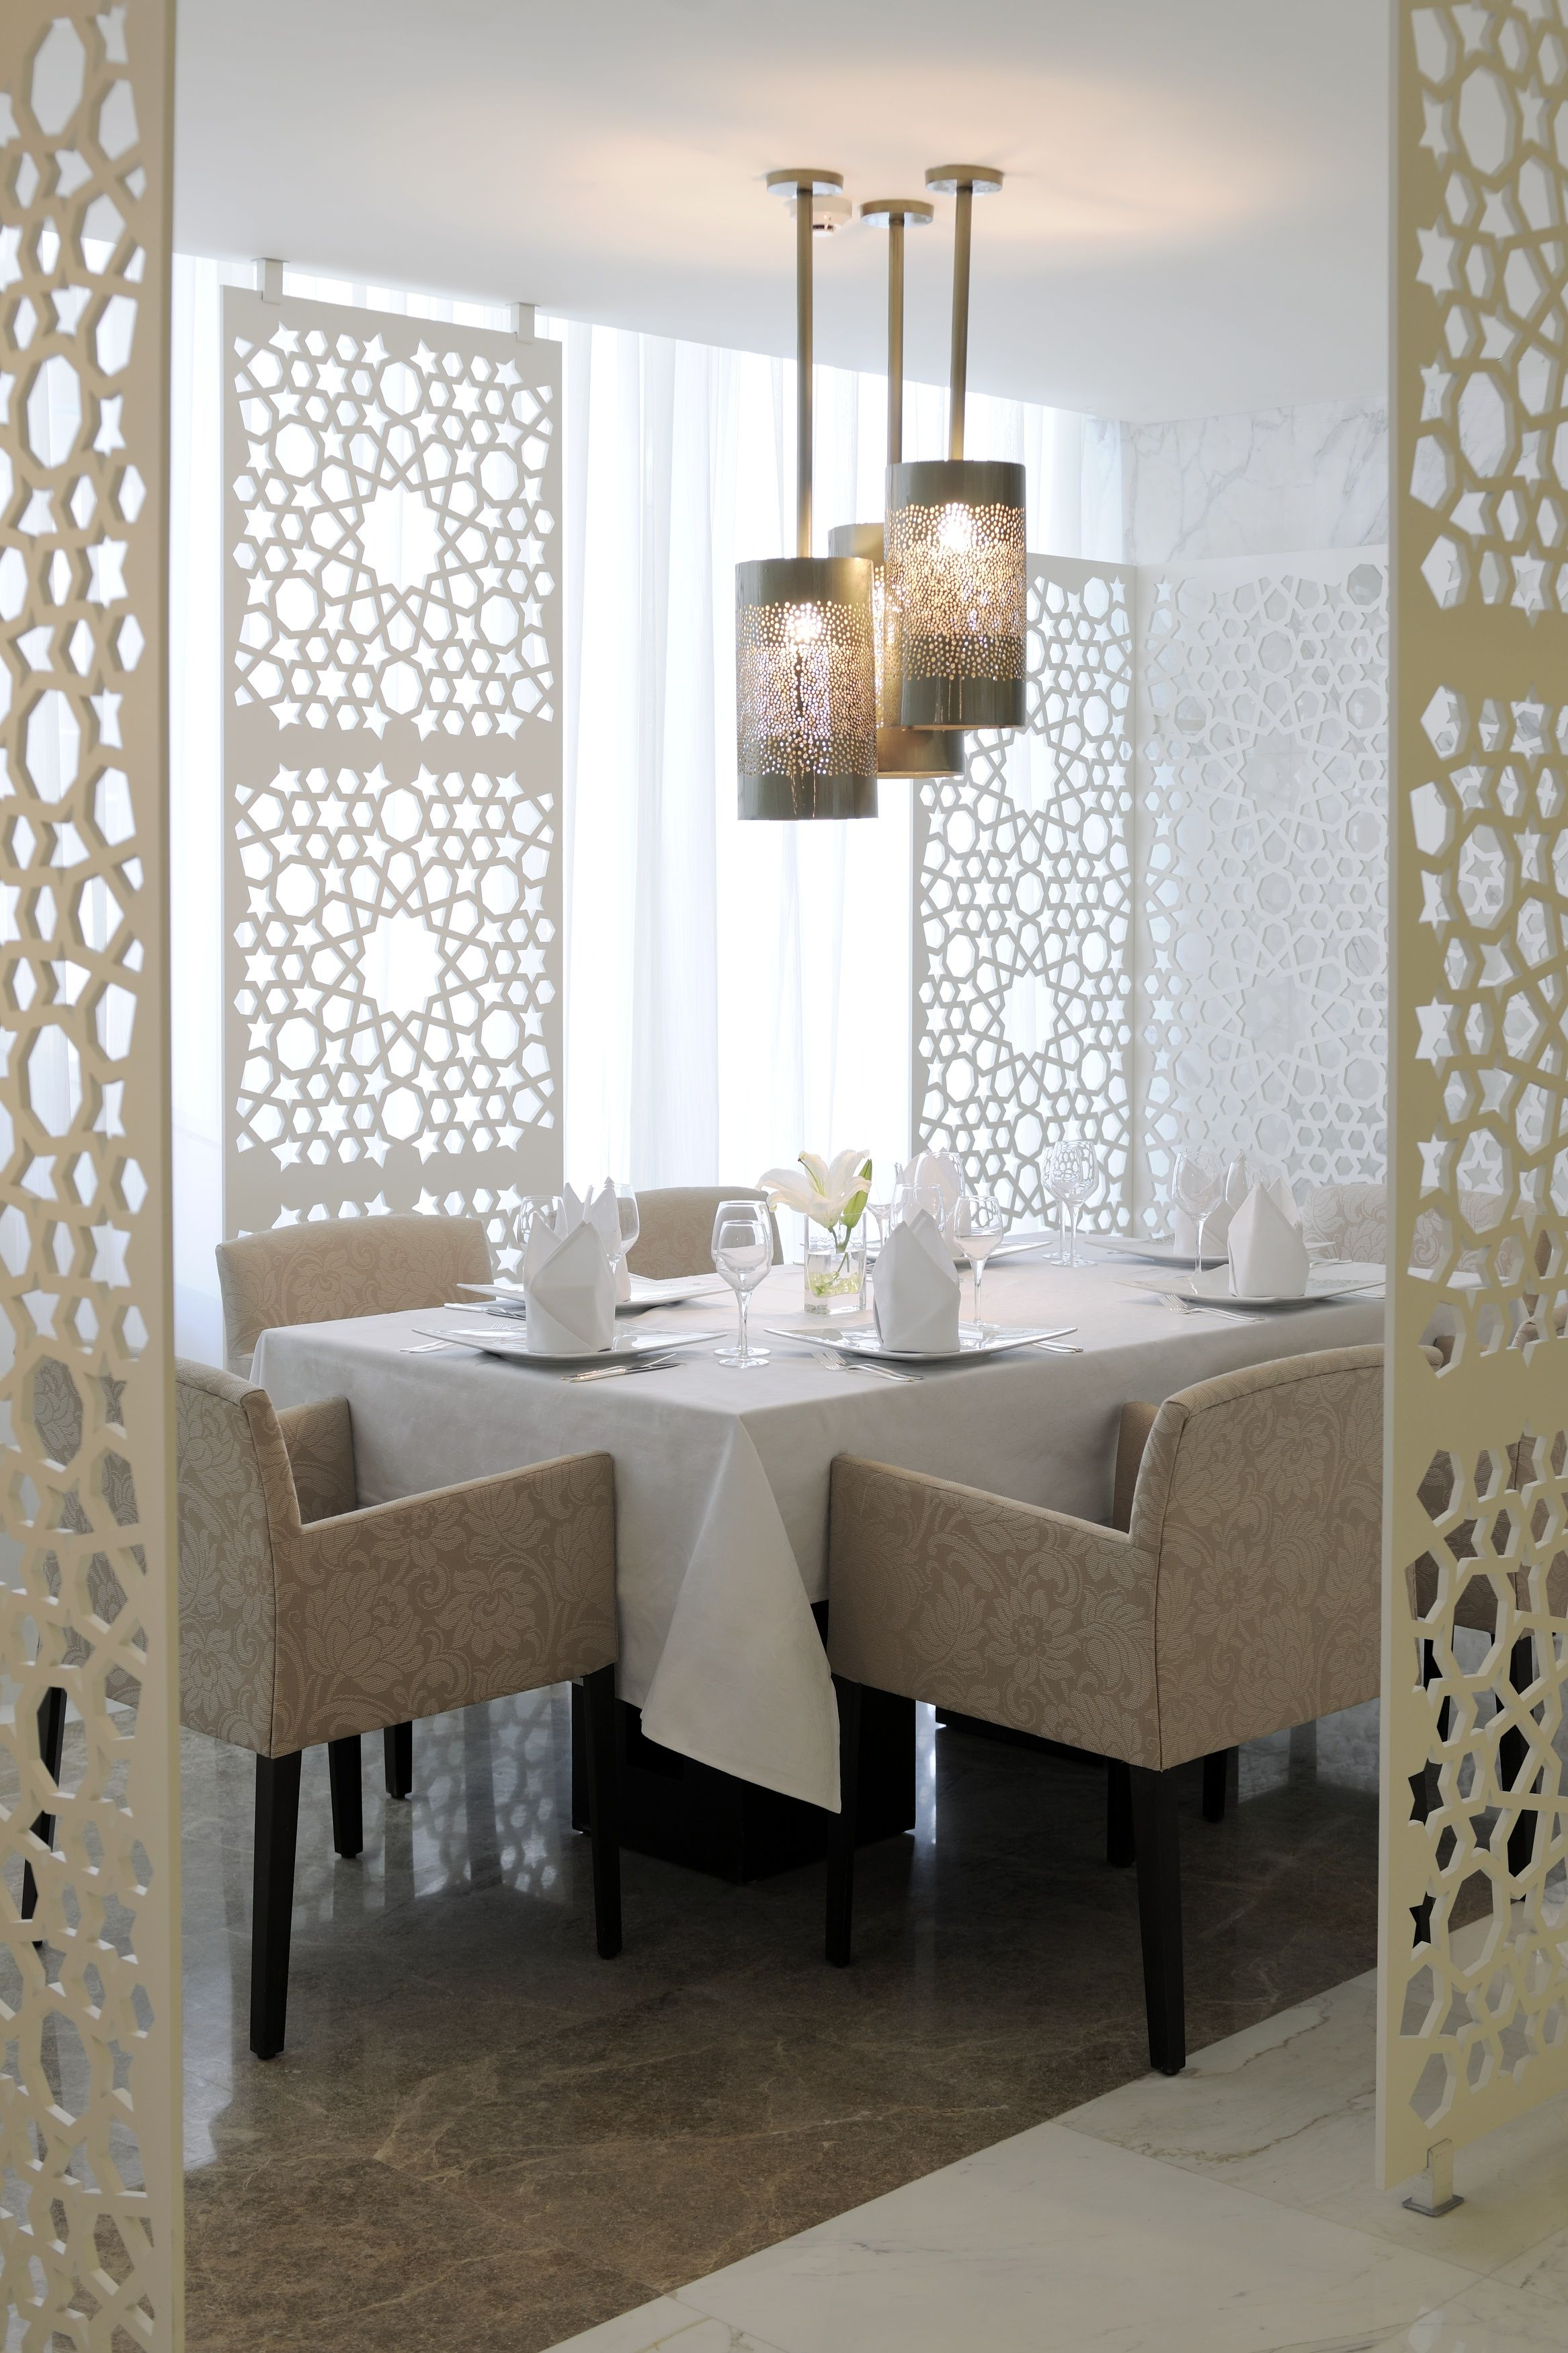 Un restaurant en arabie design d 39 int rieur d coration for Design d interieur de luxe